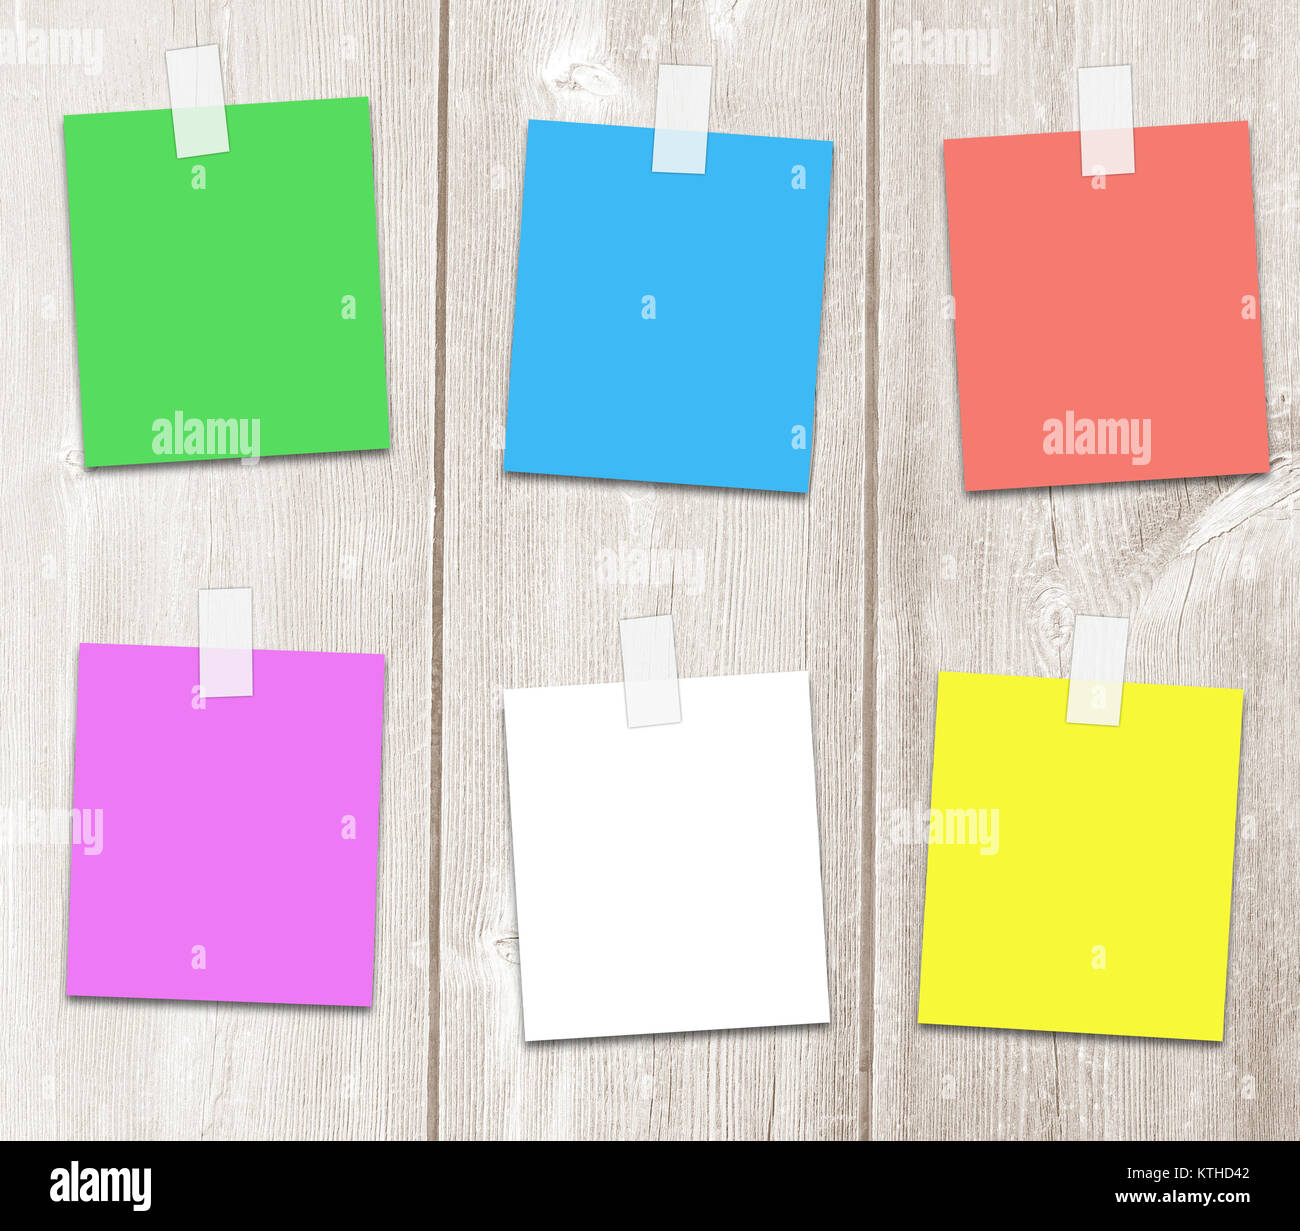 Colored paper sheets for an adhesive tape with copy space for text, notes, and reminders. - Stock Image